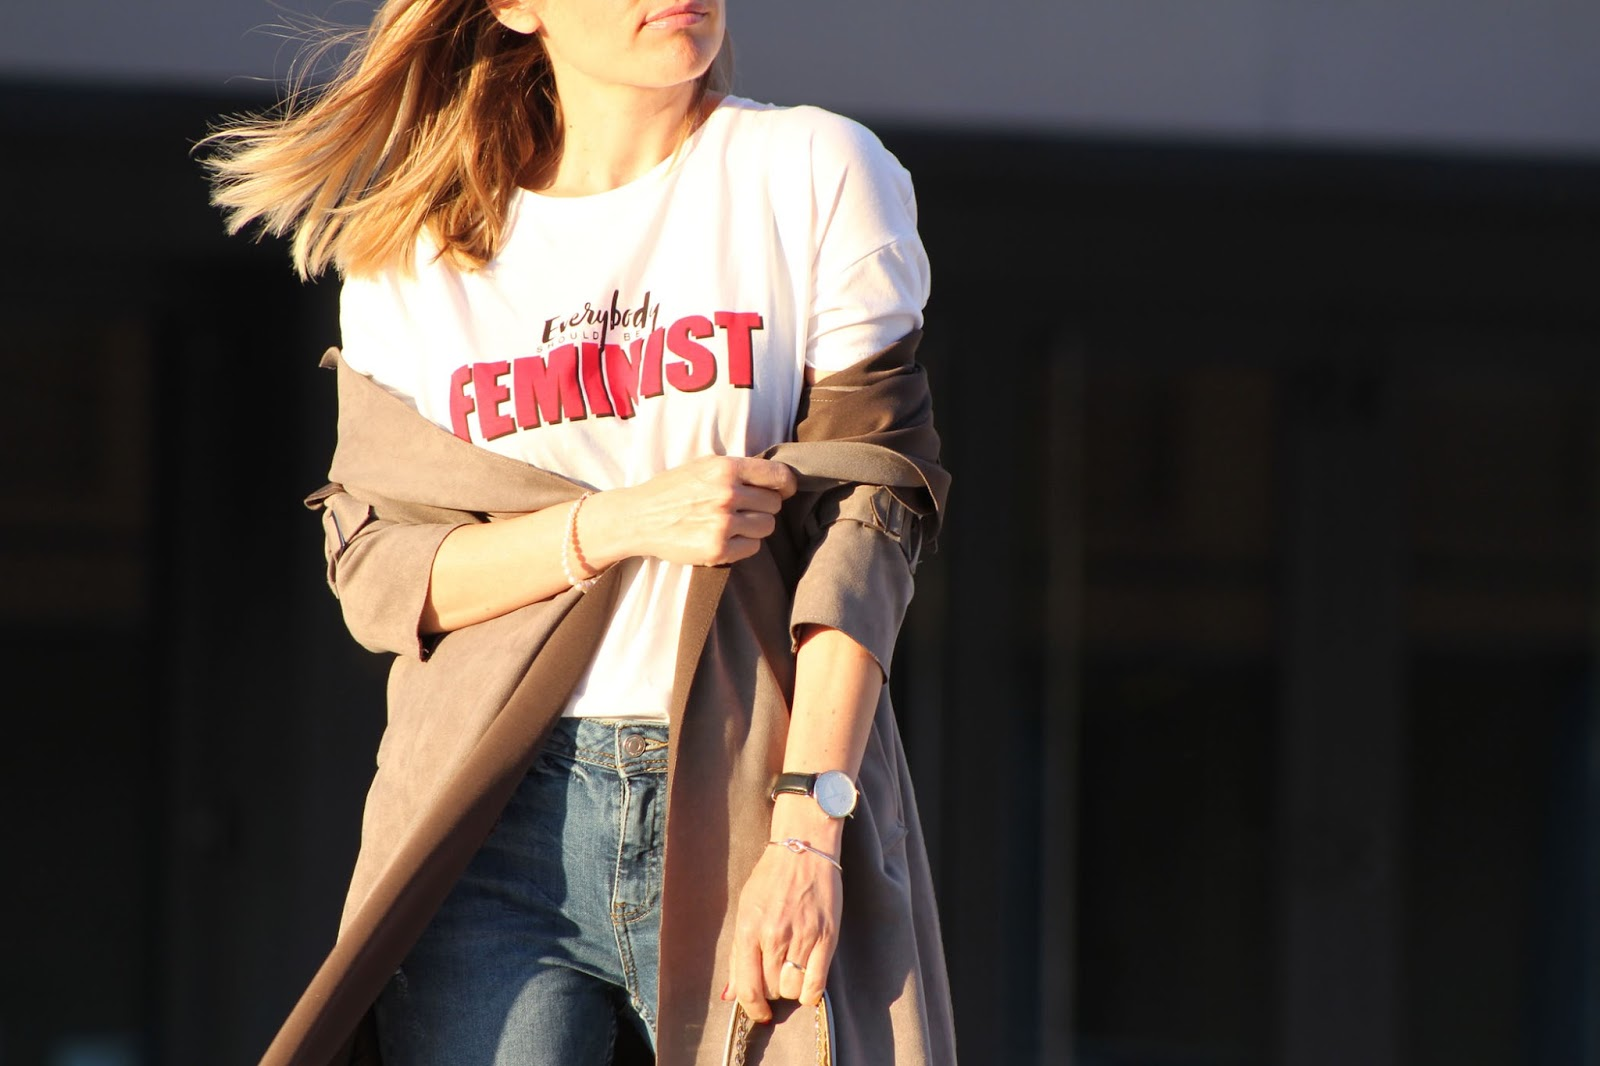 Creare un look casual chic and we should all be feminists